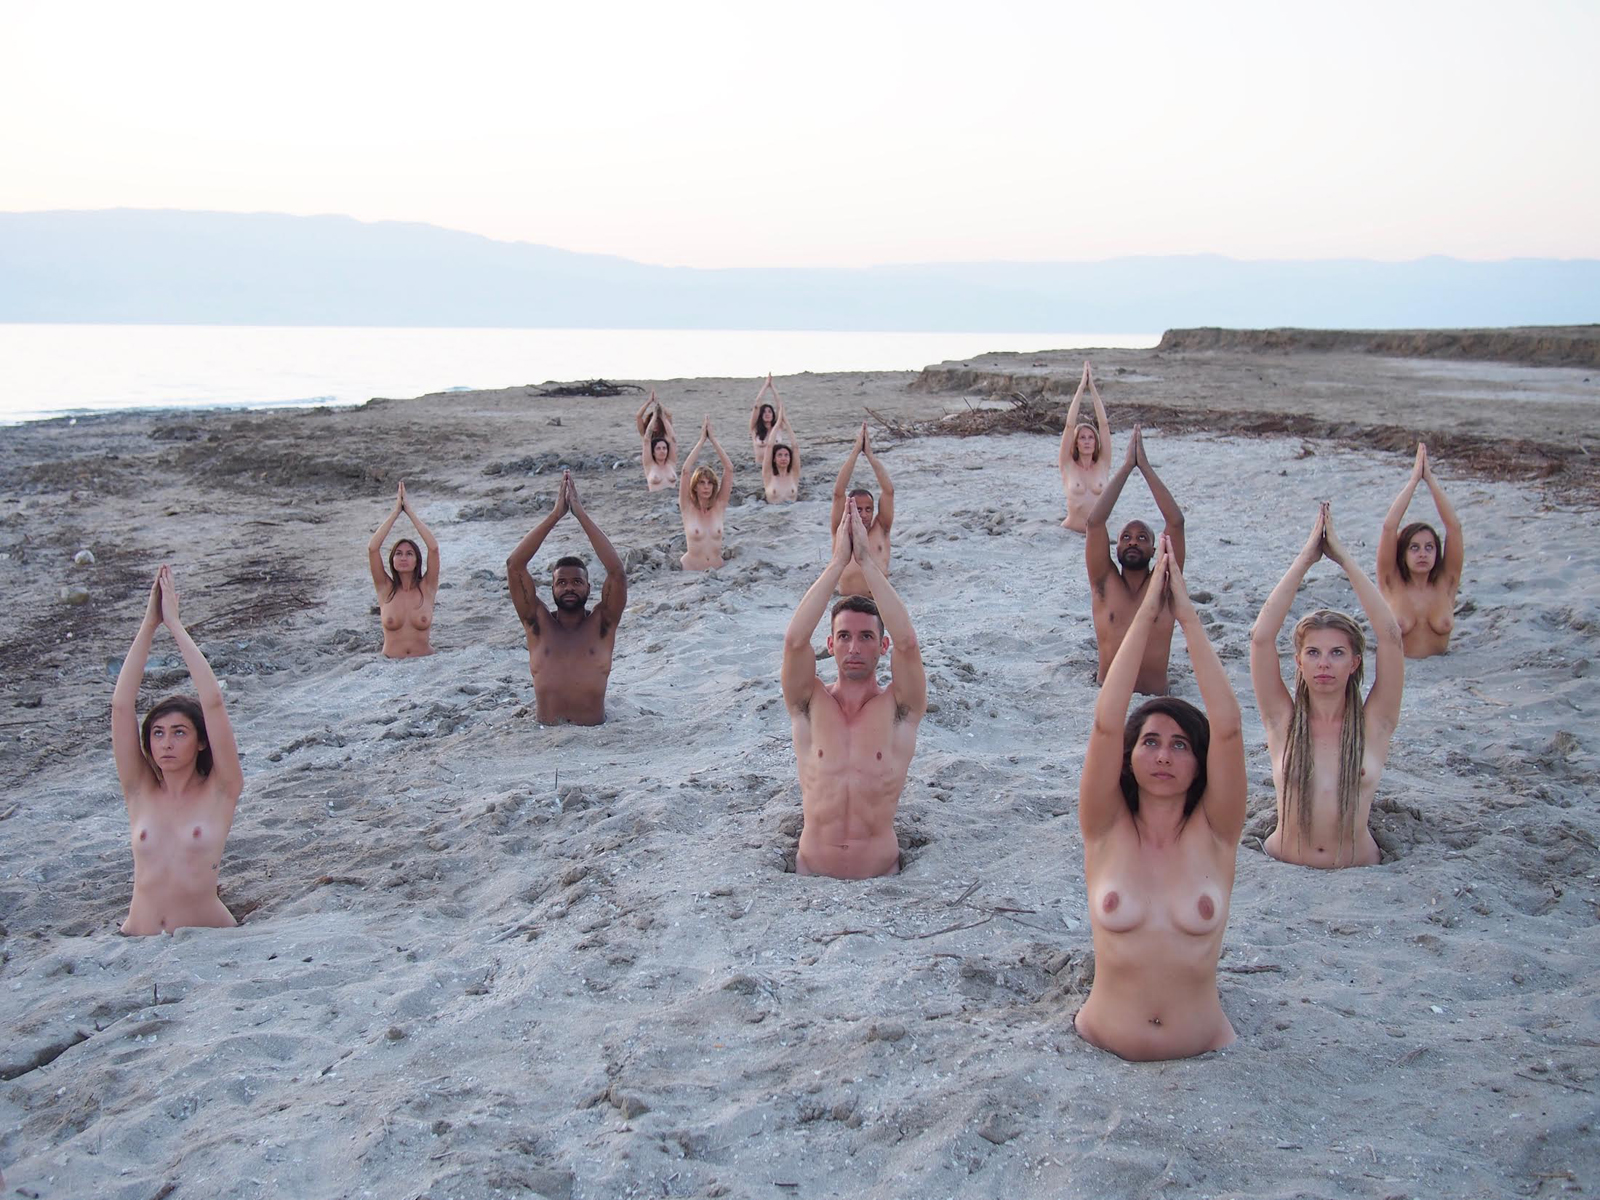 Naked Art Installation. Photo by Spencer Tunick